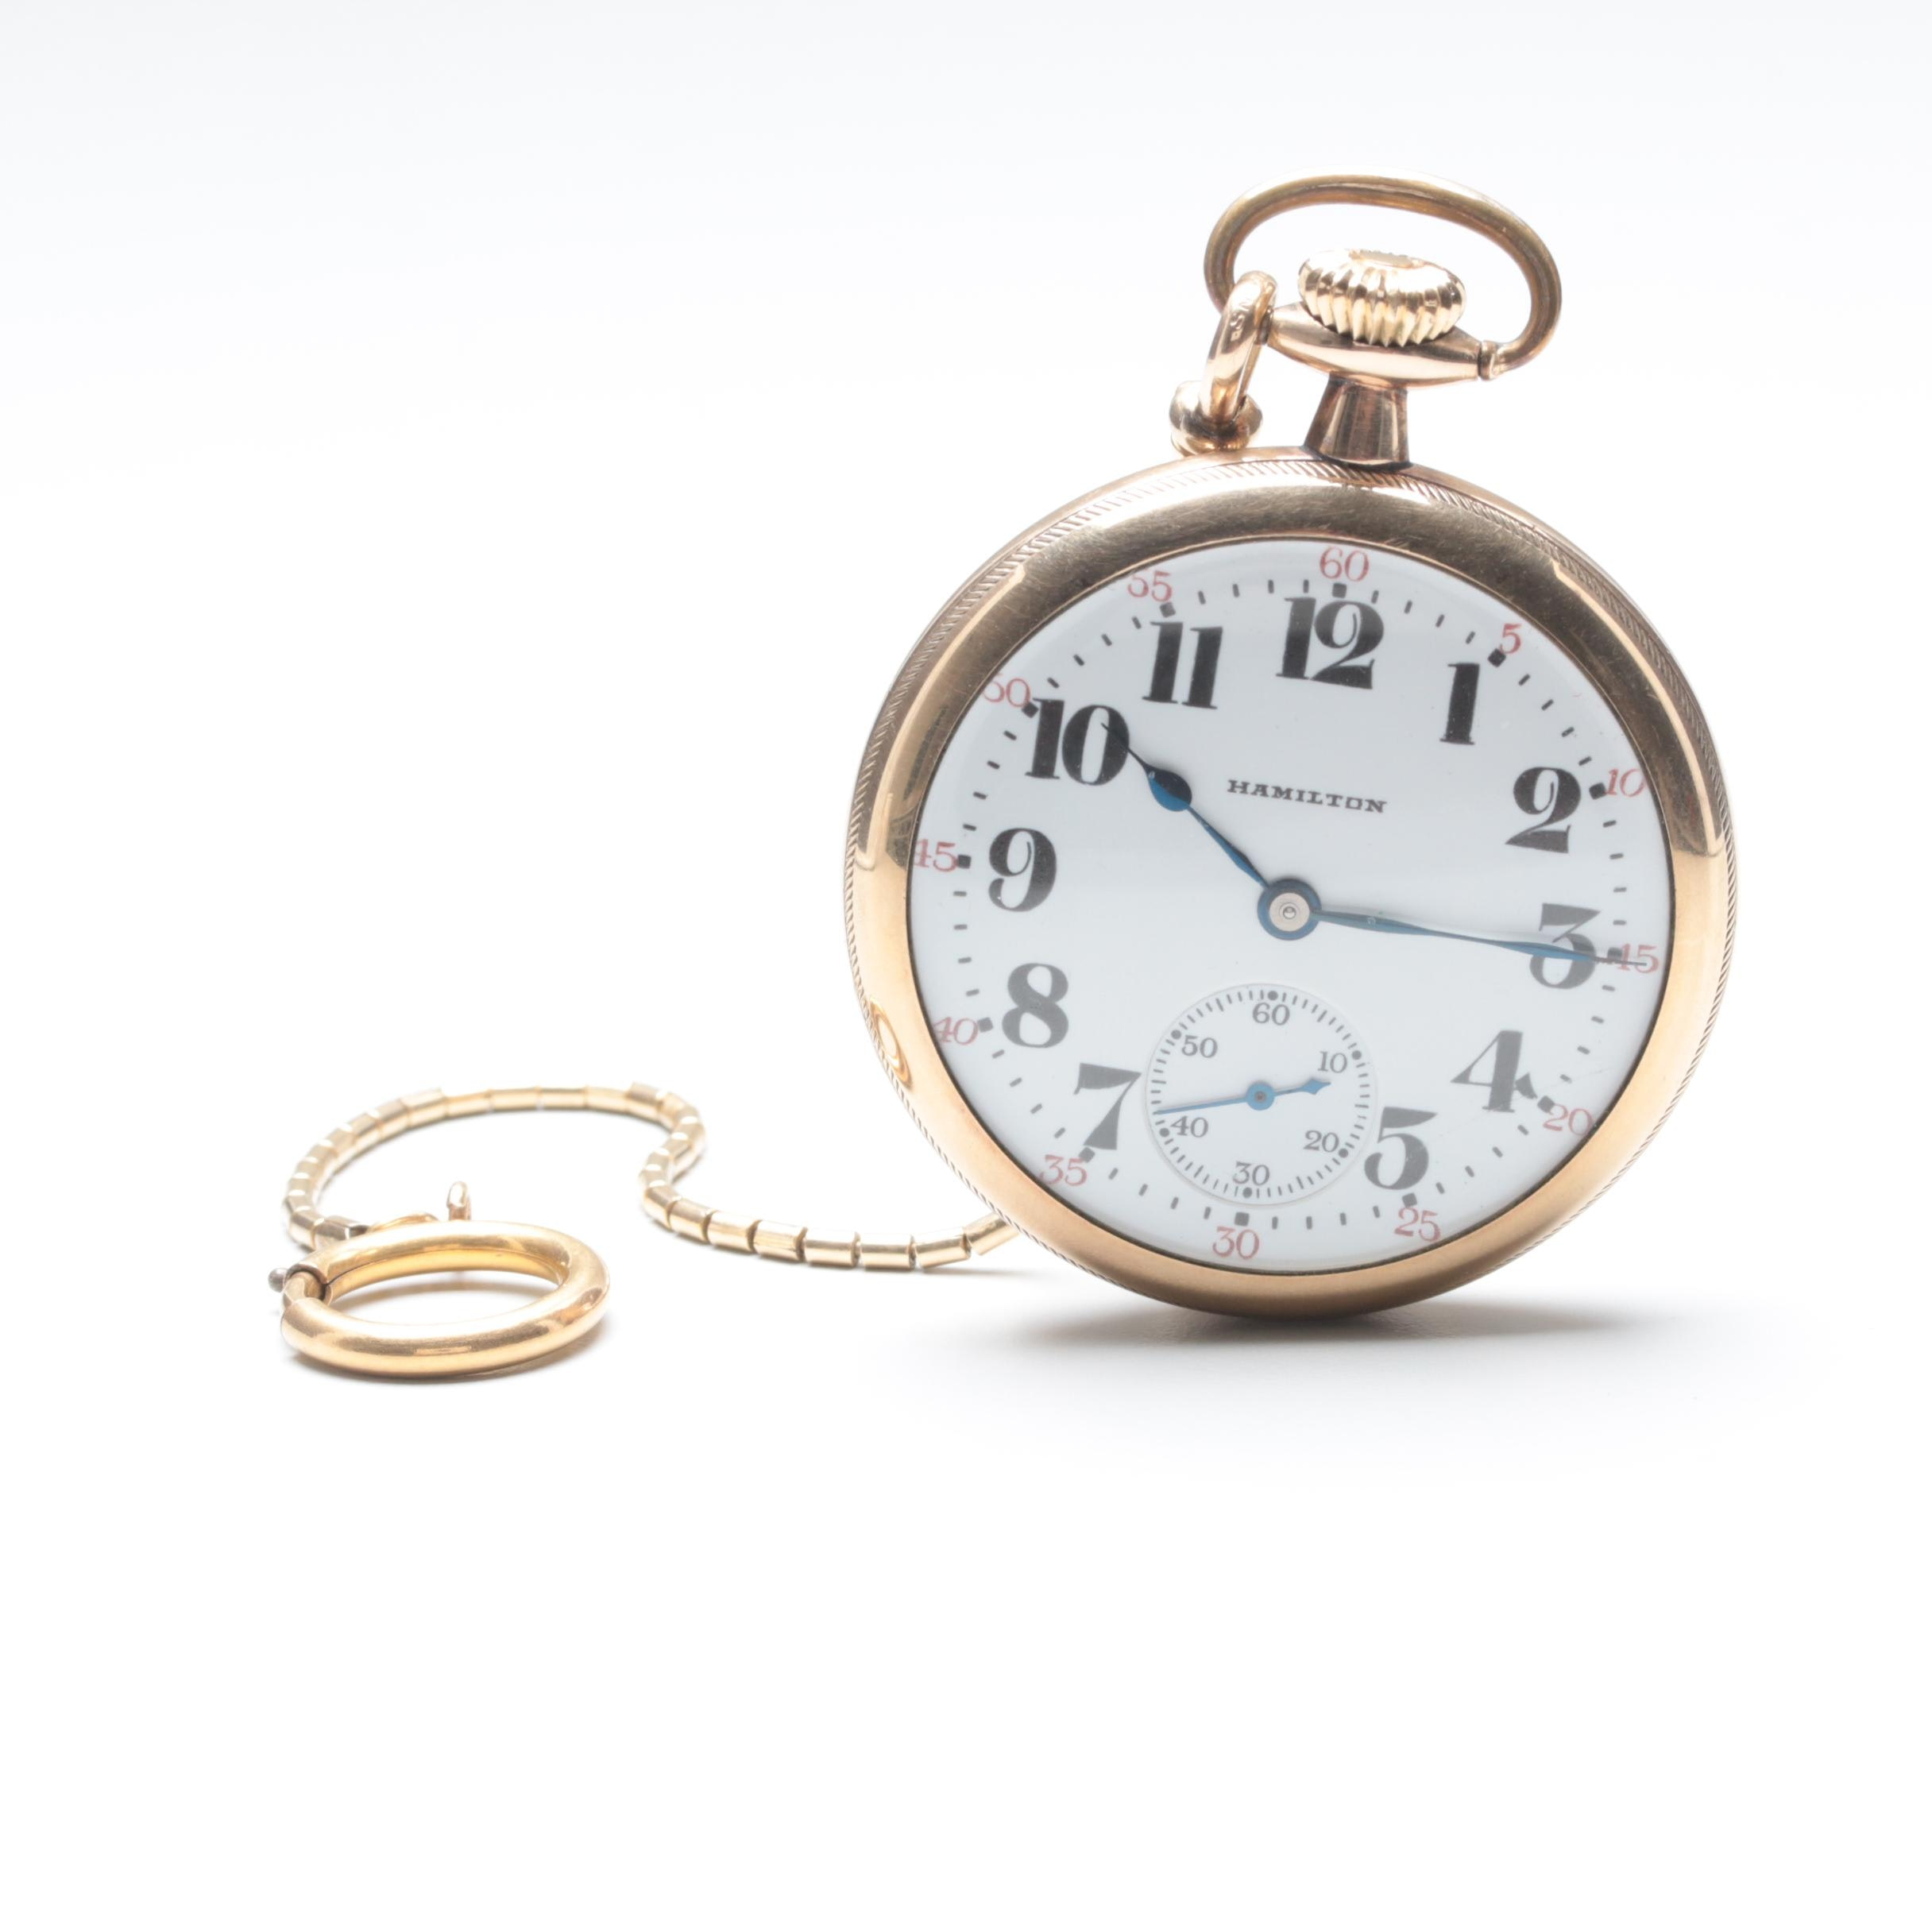 Circa 1915 Hamilton Gold Filled Open Face Pocket Watch with Fob